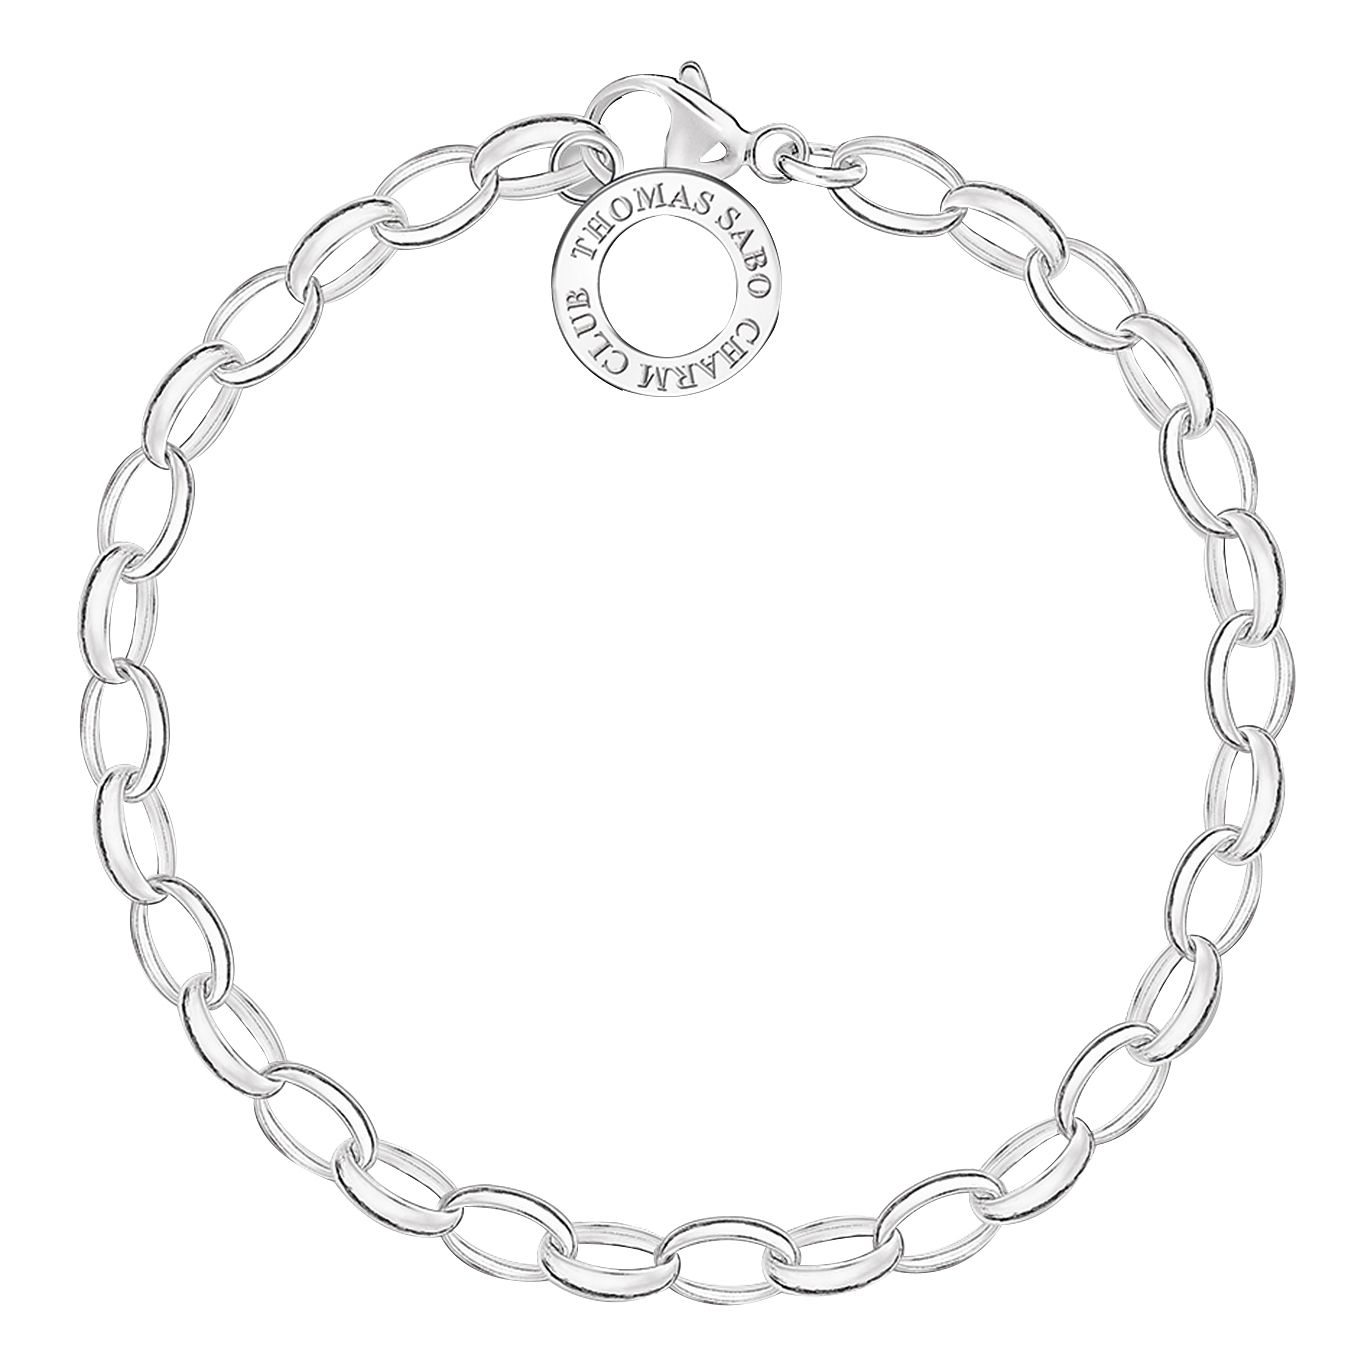 Thomas Sabo Charm Club Classic Small Charm Bracelet - Product number 6395678